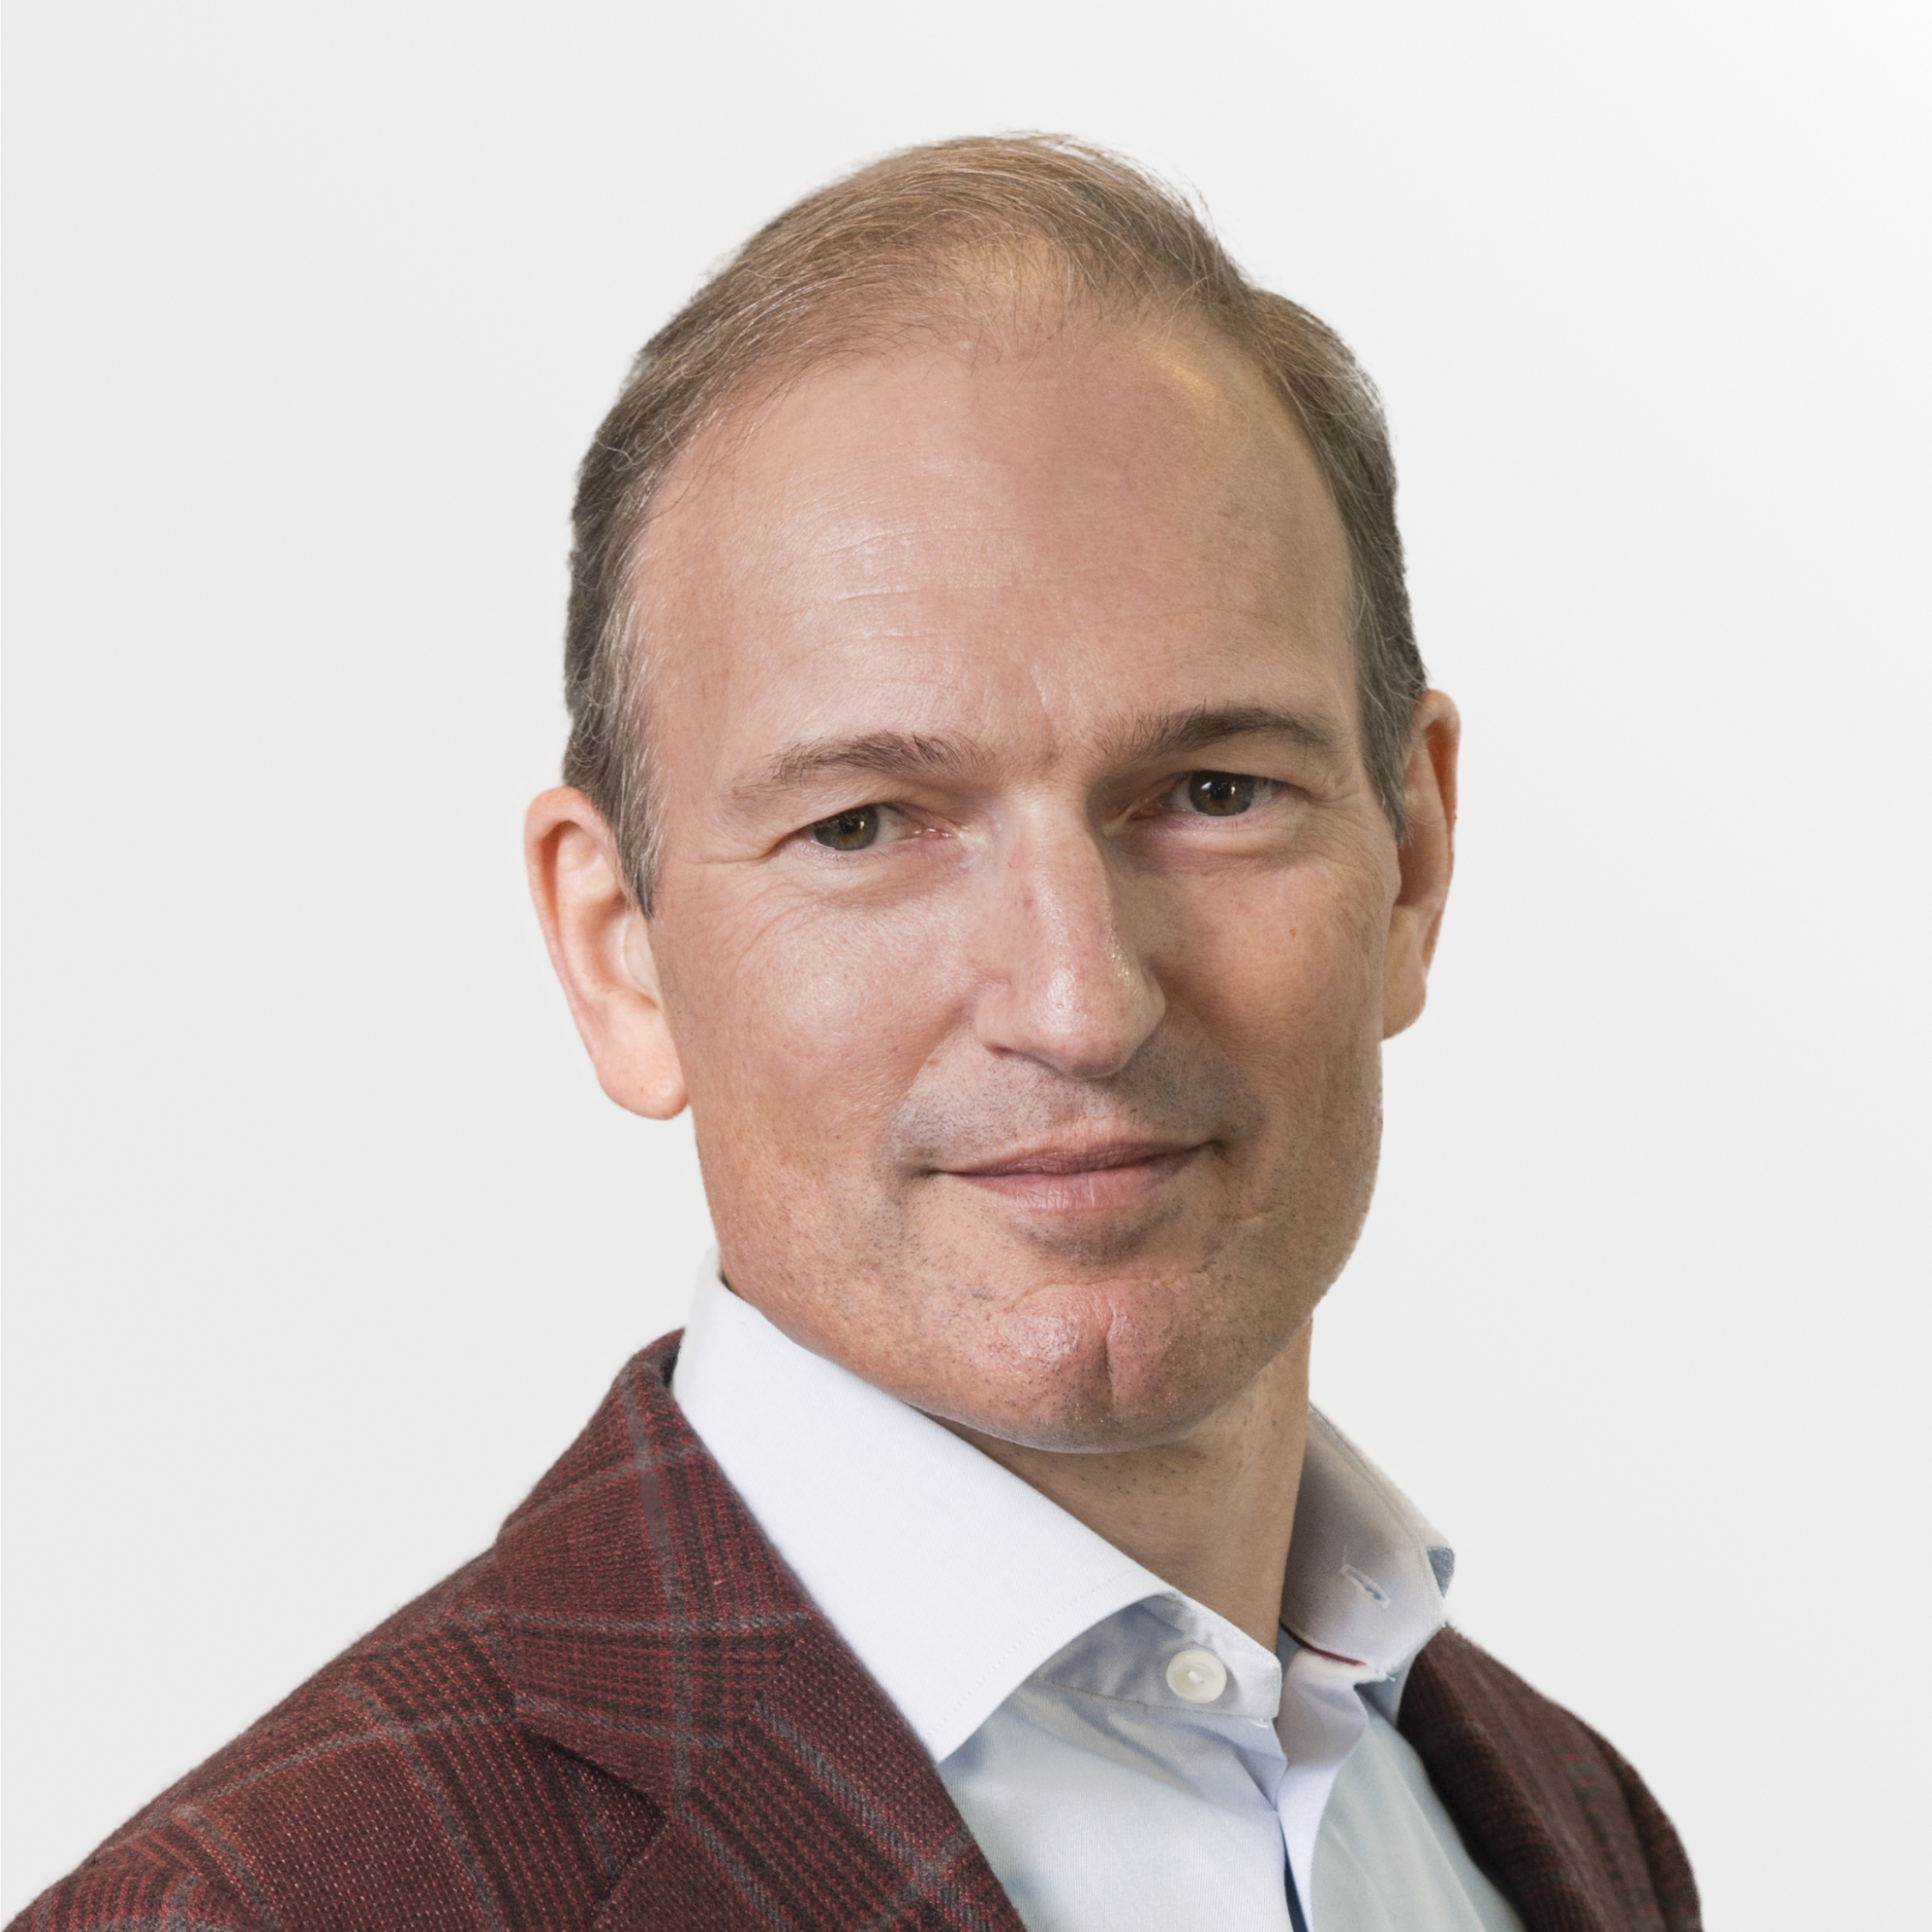 Garry Menzel, PhD and MBA PRESIDENT and CHIEF EXECUTIVE OFFICER